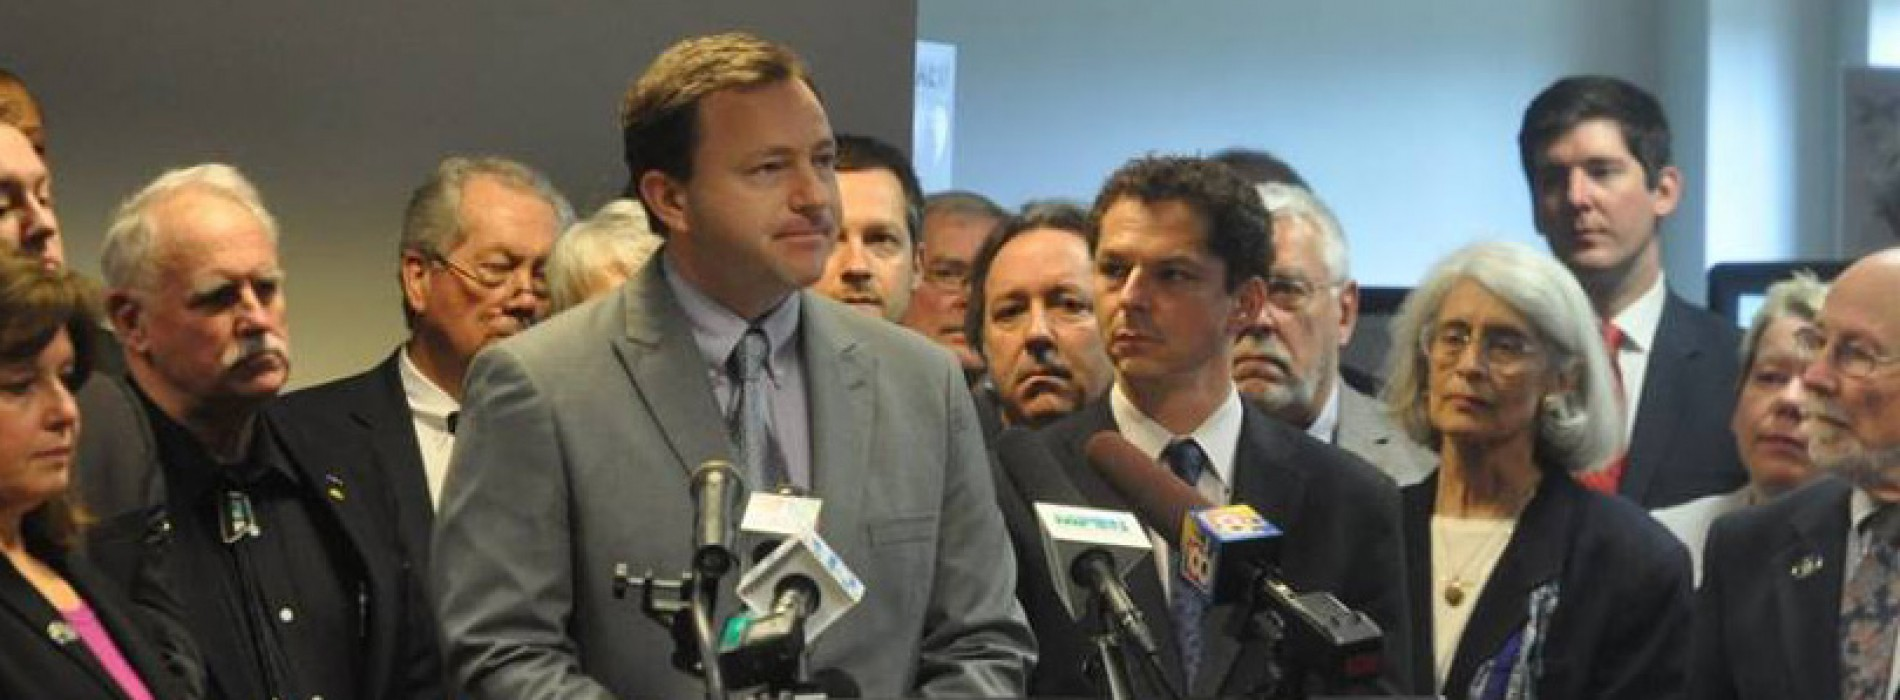 Democratic leaders reject Gov. LePage's call for legislative do-over